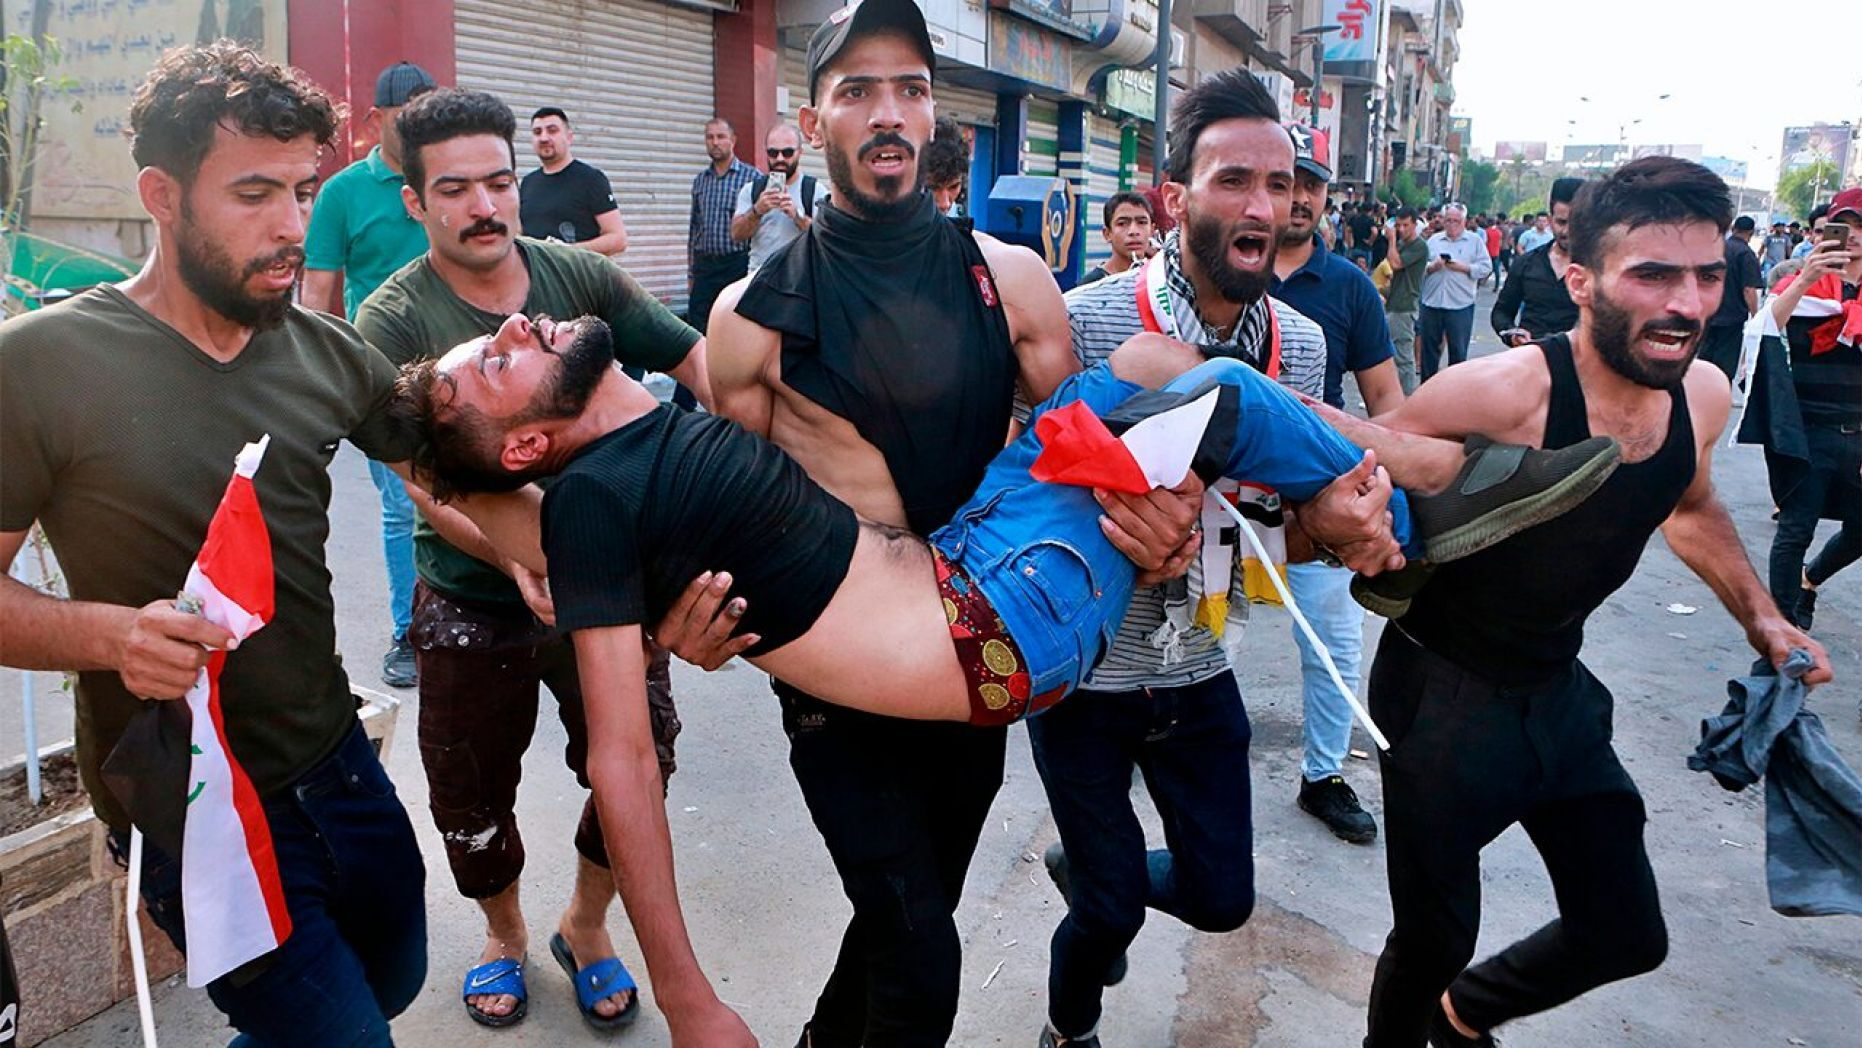 An injured protester is carried off during a protest in Baghdad, Iraq, on Tuesday.